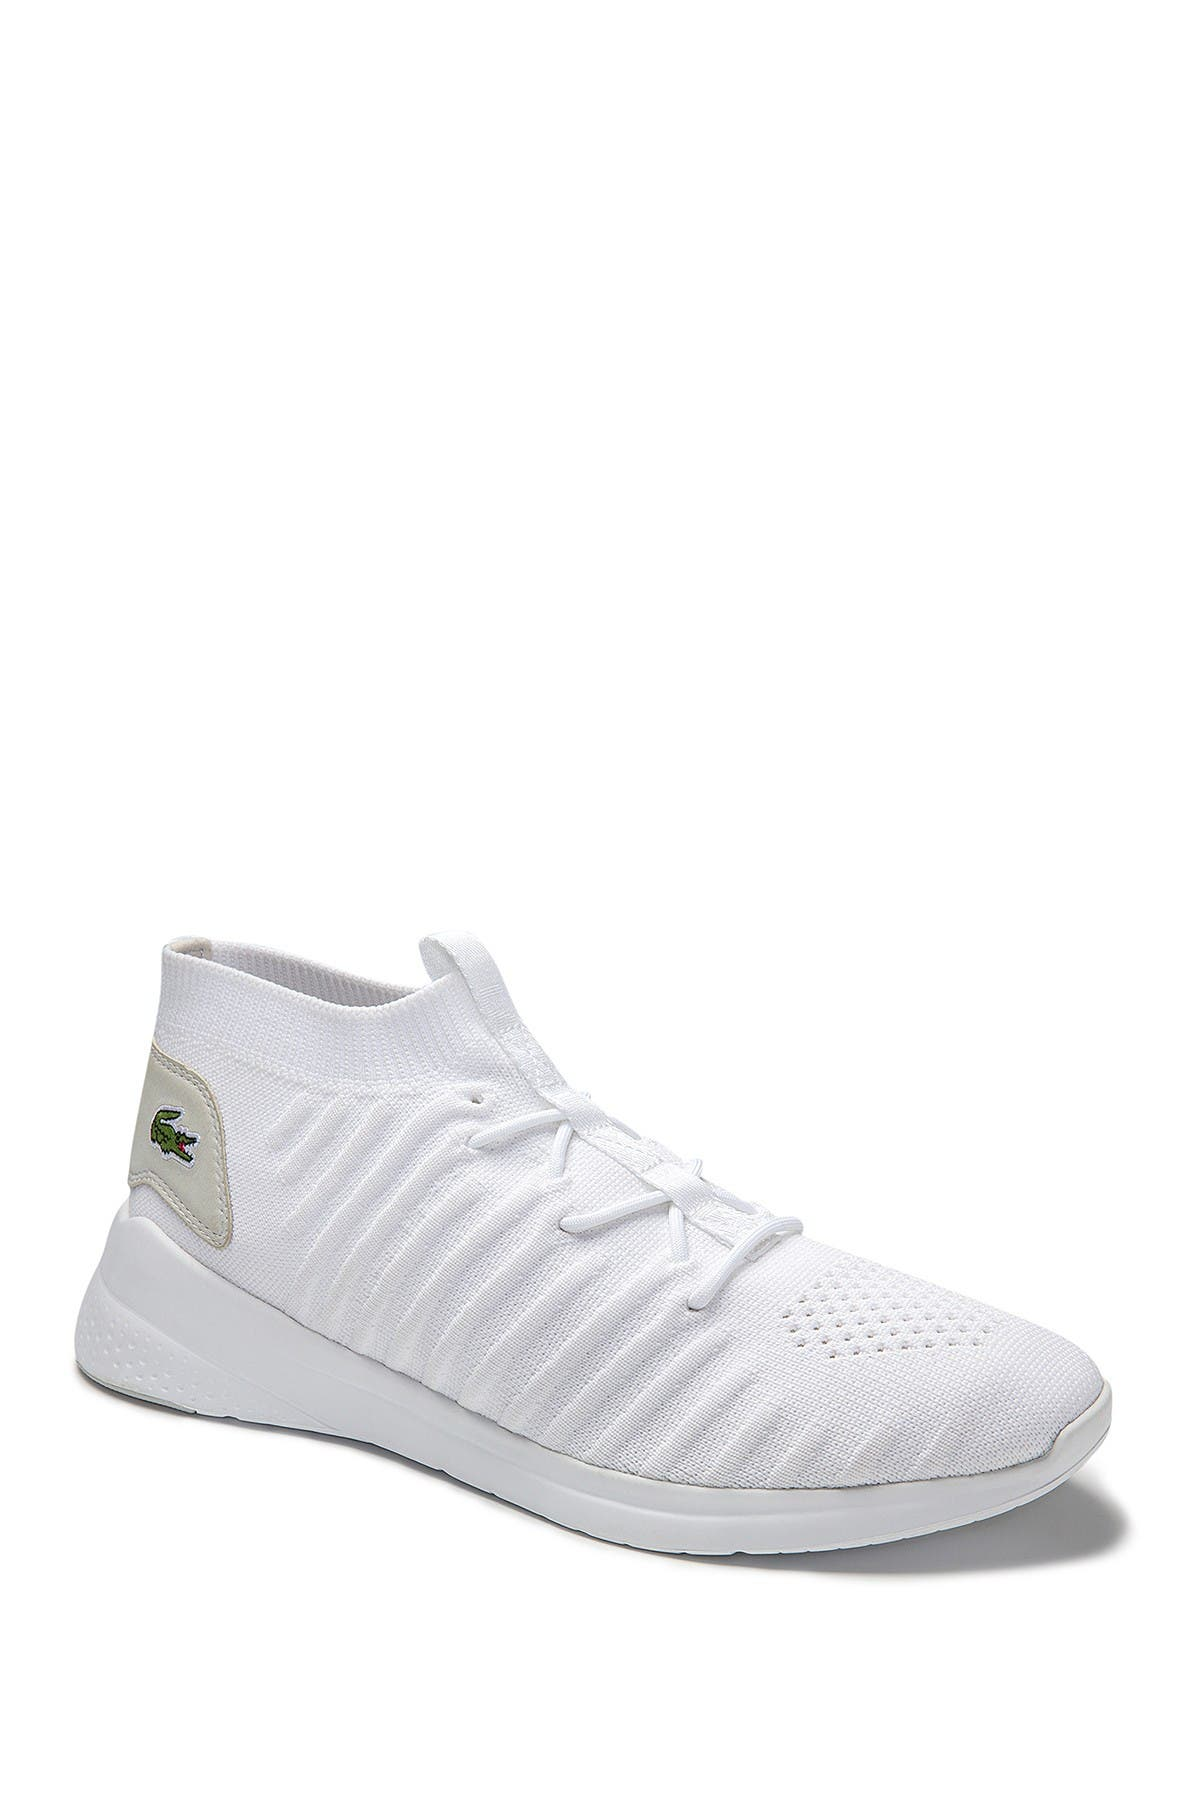 Image of Lacoste LT Fit-Flex 319 Sneaker